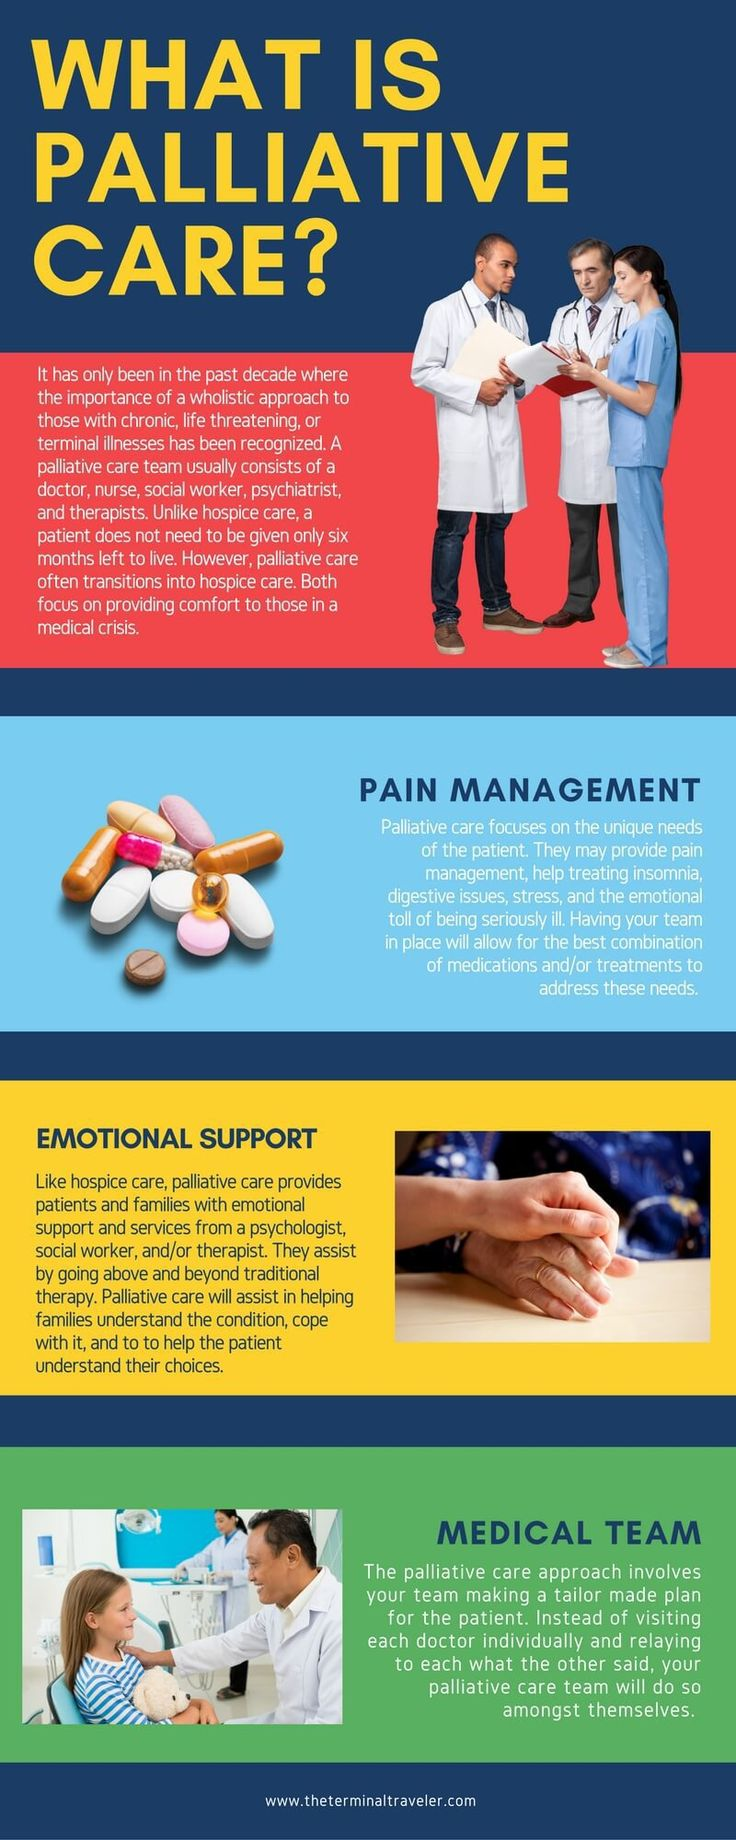 Infographic describing what palliative care is.